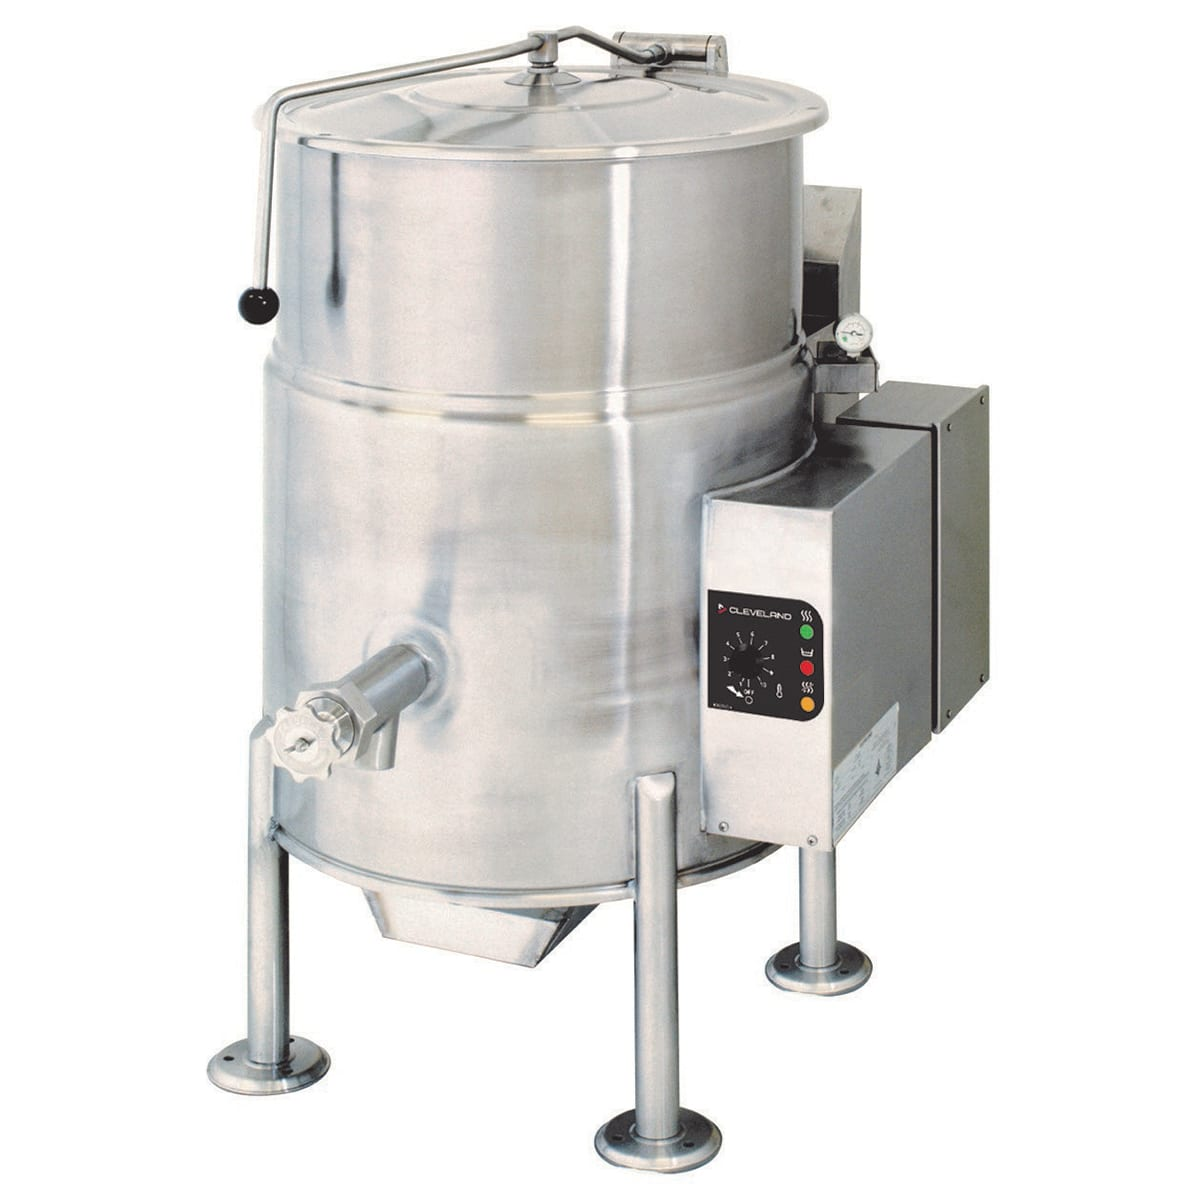 Cleveland KGL25 25 Gallon Stationary Kettle w/ Electronic Ignition, 2/3 Steam Jacket, NG